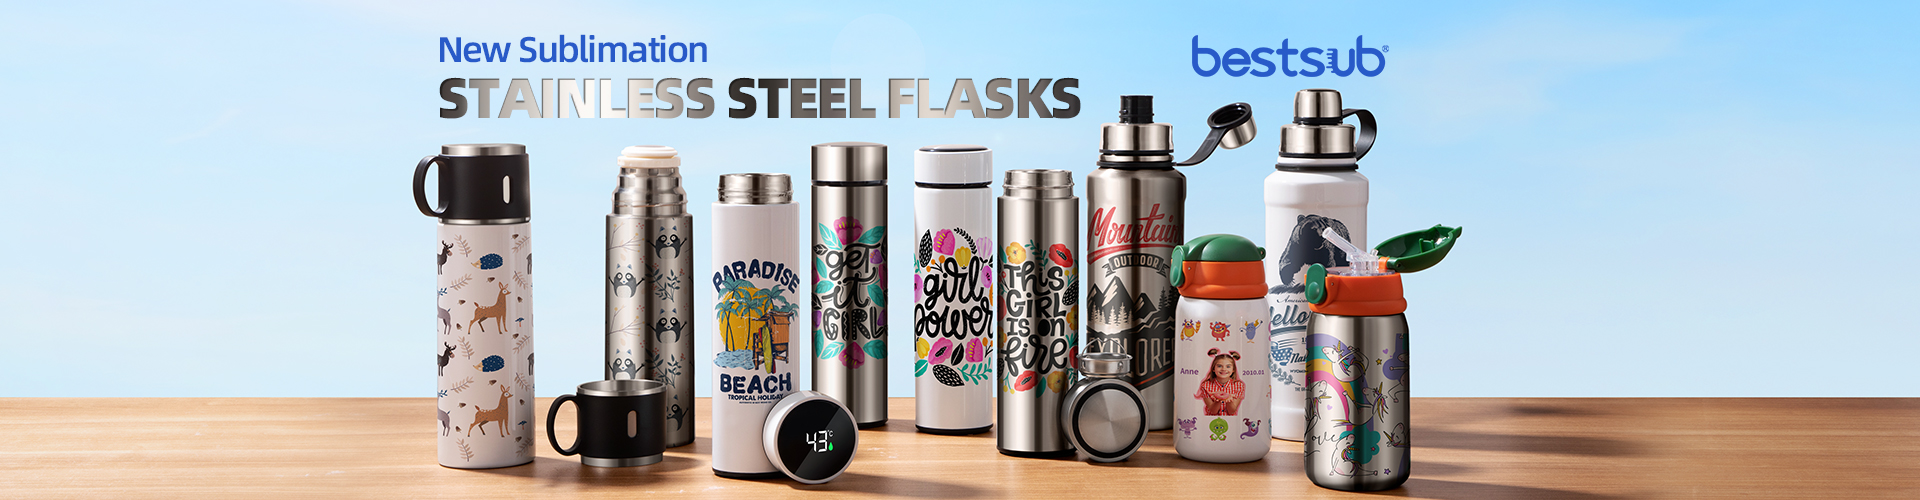 2021-01-18_New_Sublimation_Stainless_Steel-_Flasks_new_web